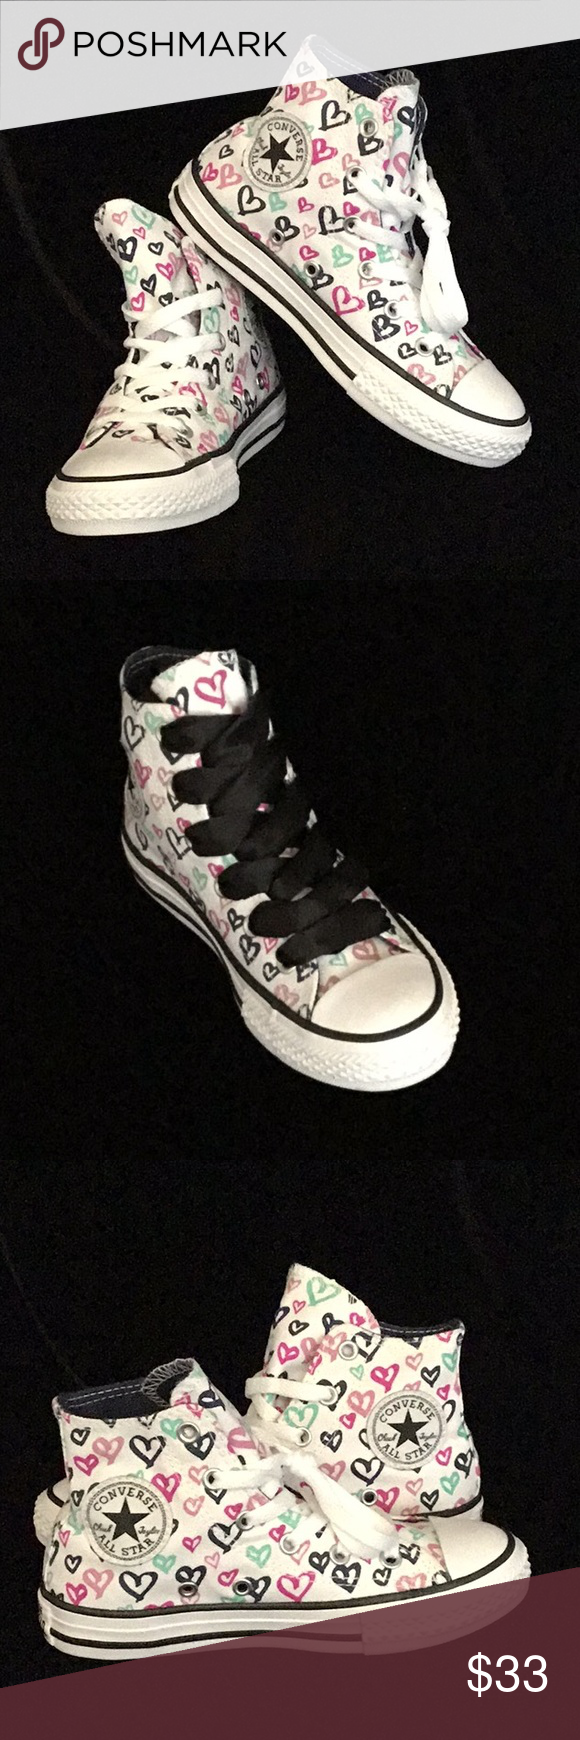 d25688037d96 Converse - Chuck Taylor - Hearts Youth US 13    New    Youth Hi top - 9  Inches long Multicolored Heart Chuck Taylors Black stings not included  Converse ...